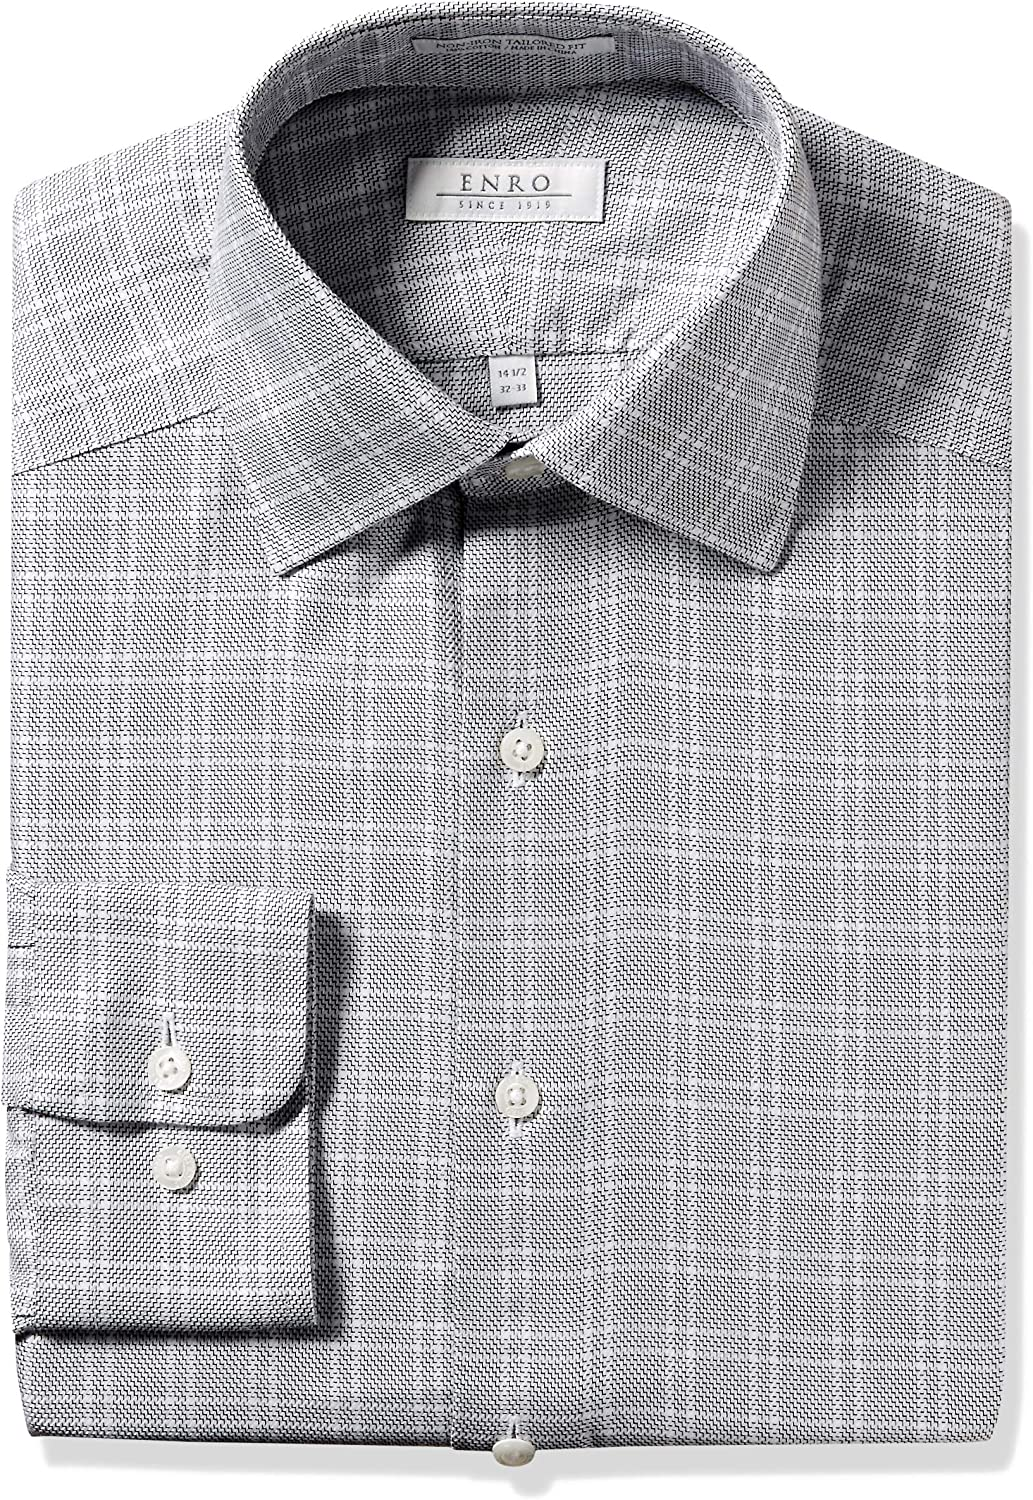 Now on sale Enro Men's Cartwright Check Attention brand Non-Iron Dress Fit Tailored Shirt